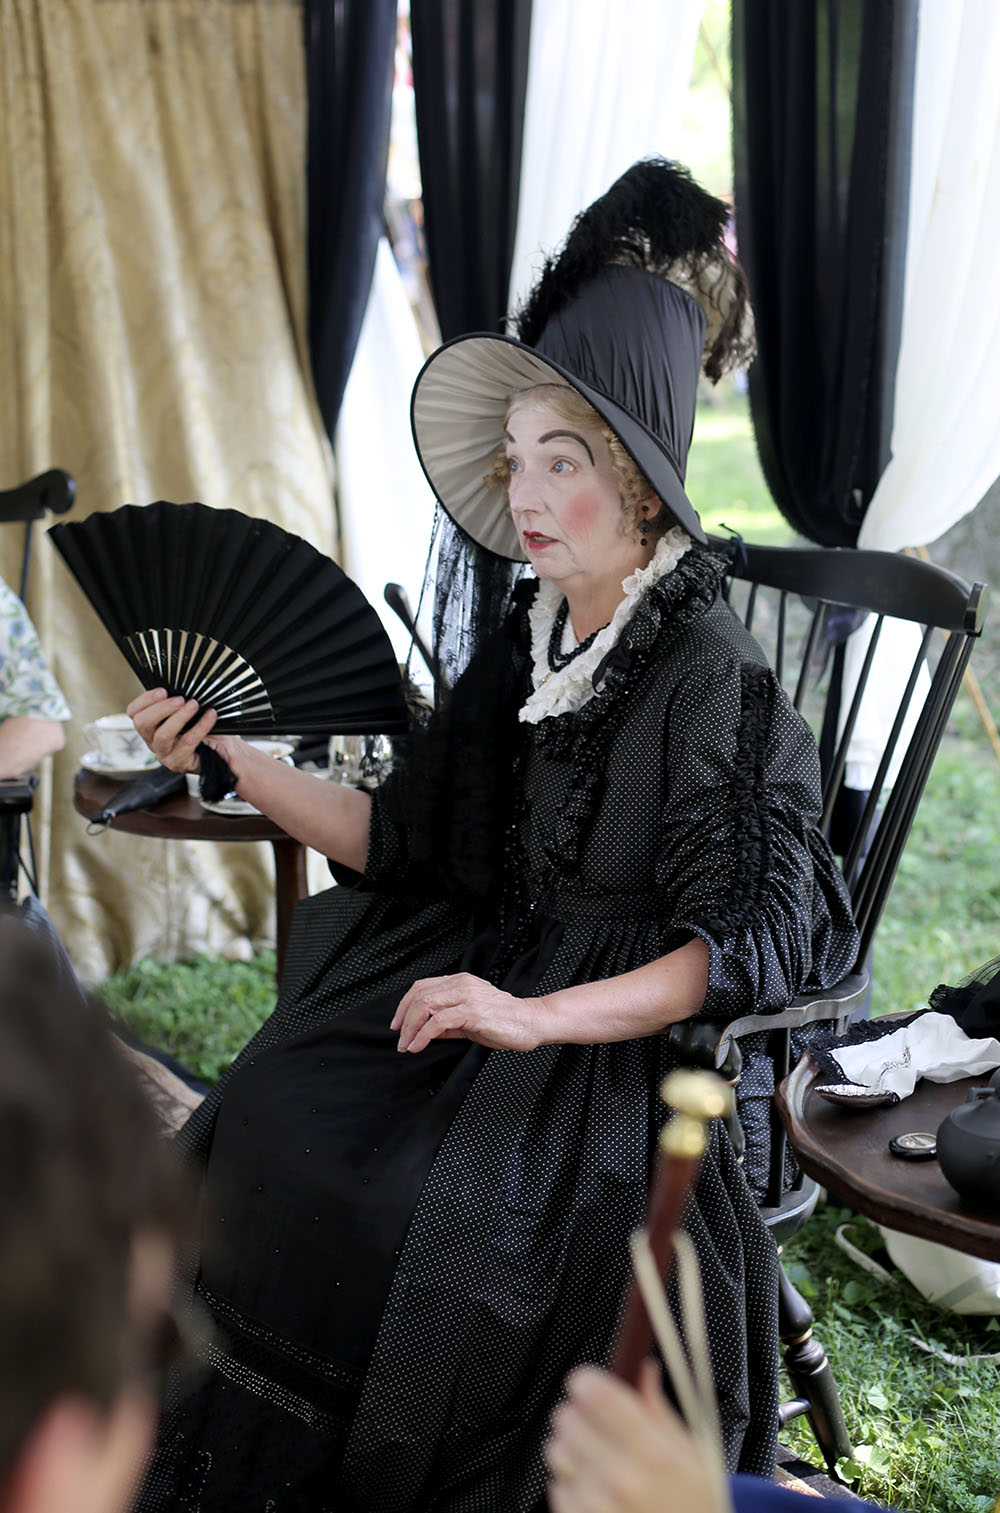 JAF+Society+Lady+in+Partial+Mourning+Attire - Jane Austen Pageant at Locust Grove 2018